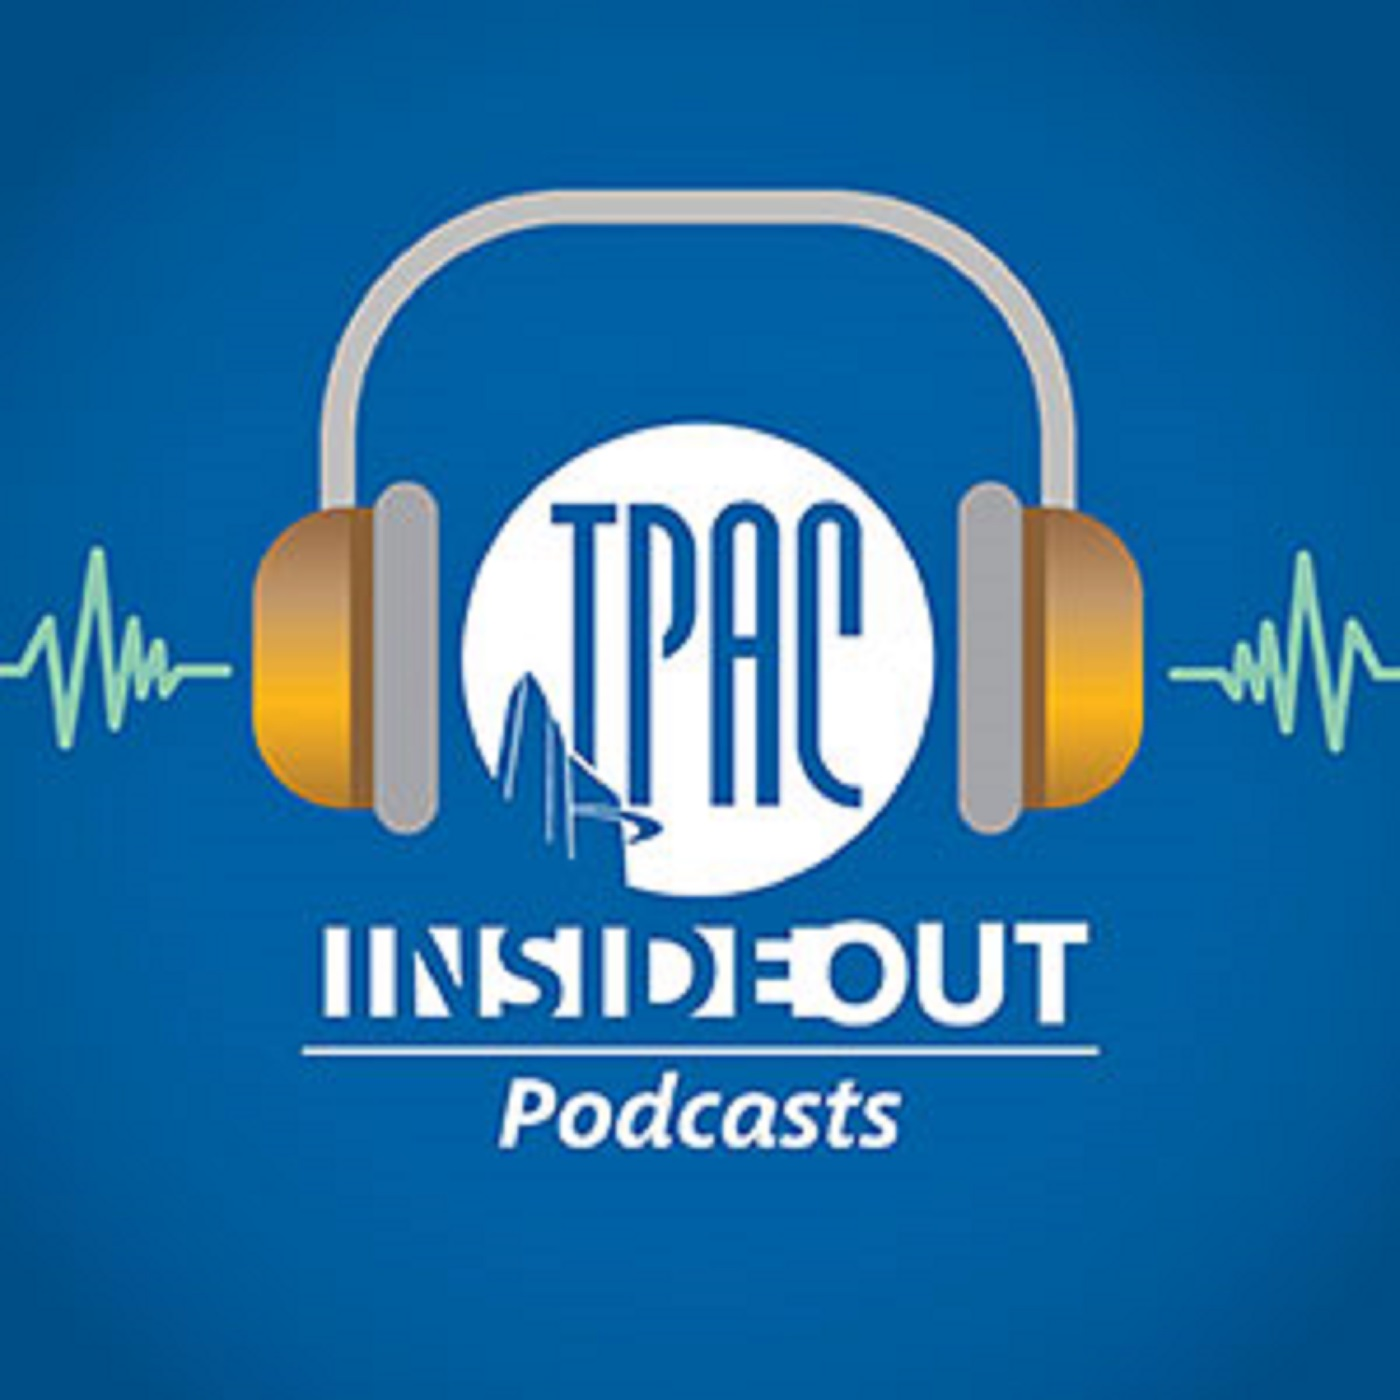 TPAC InsideOut Podcasts show art